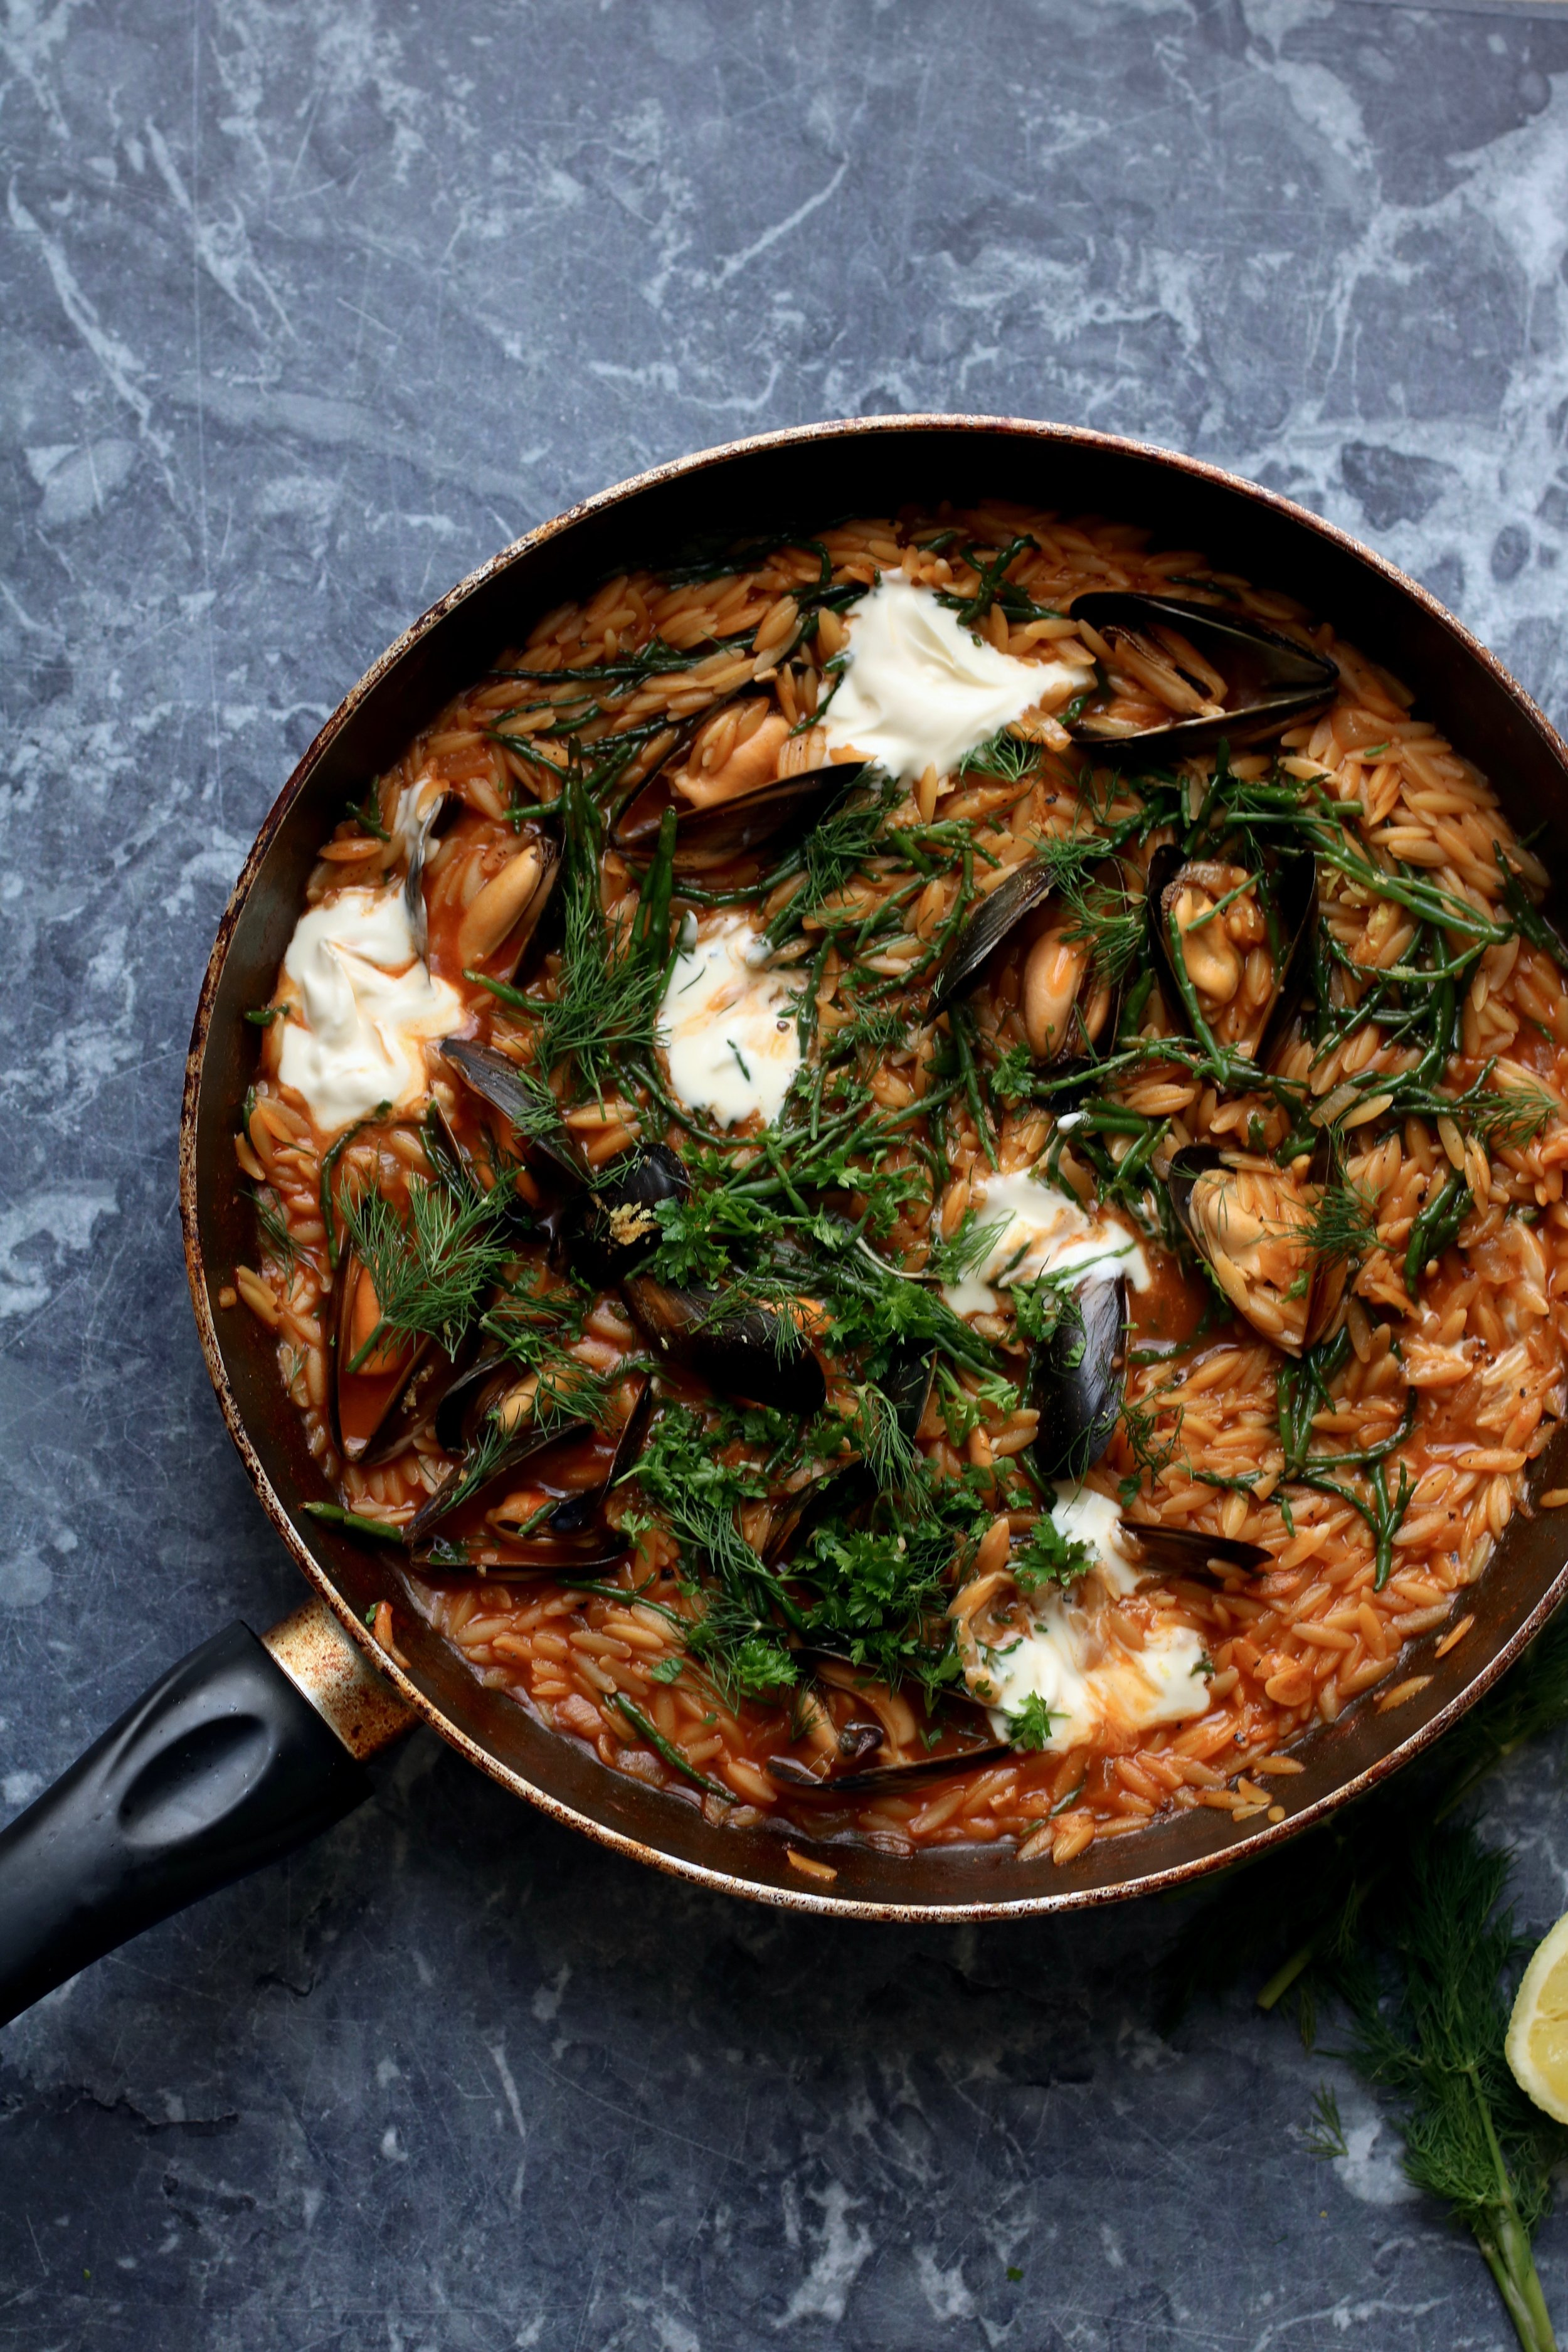 Mussels with samphire and orzo